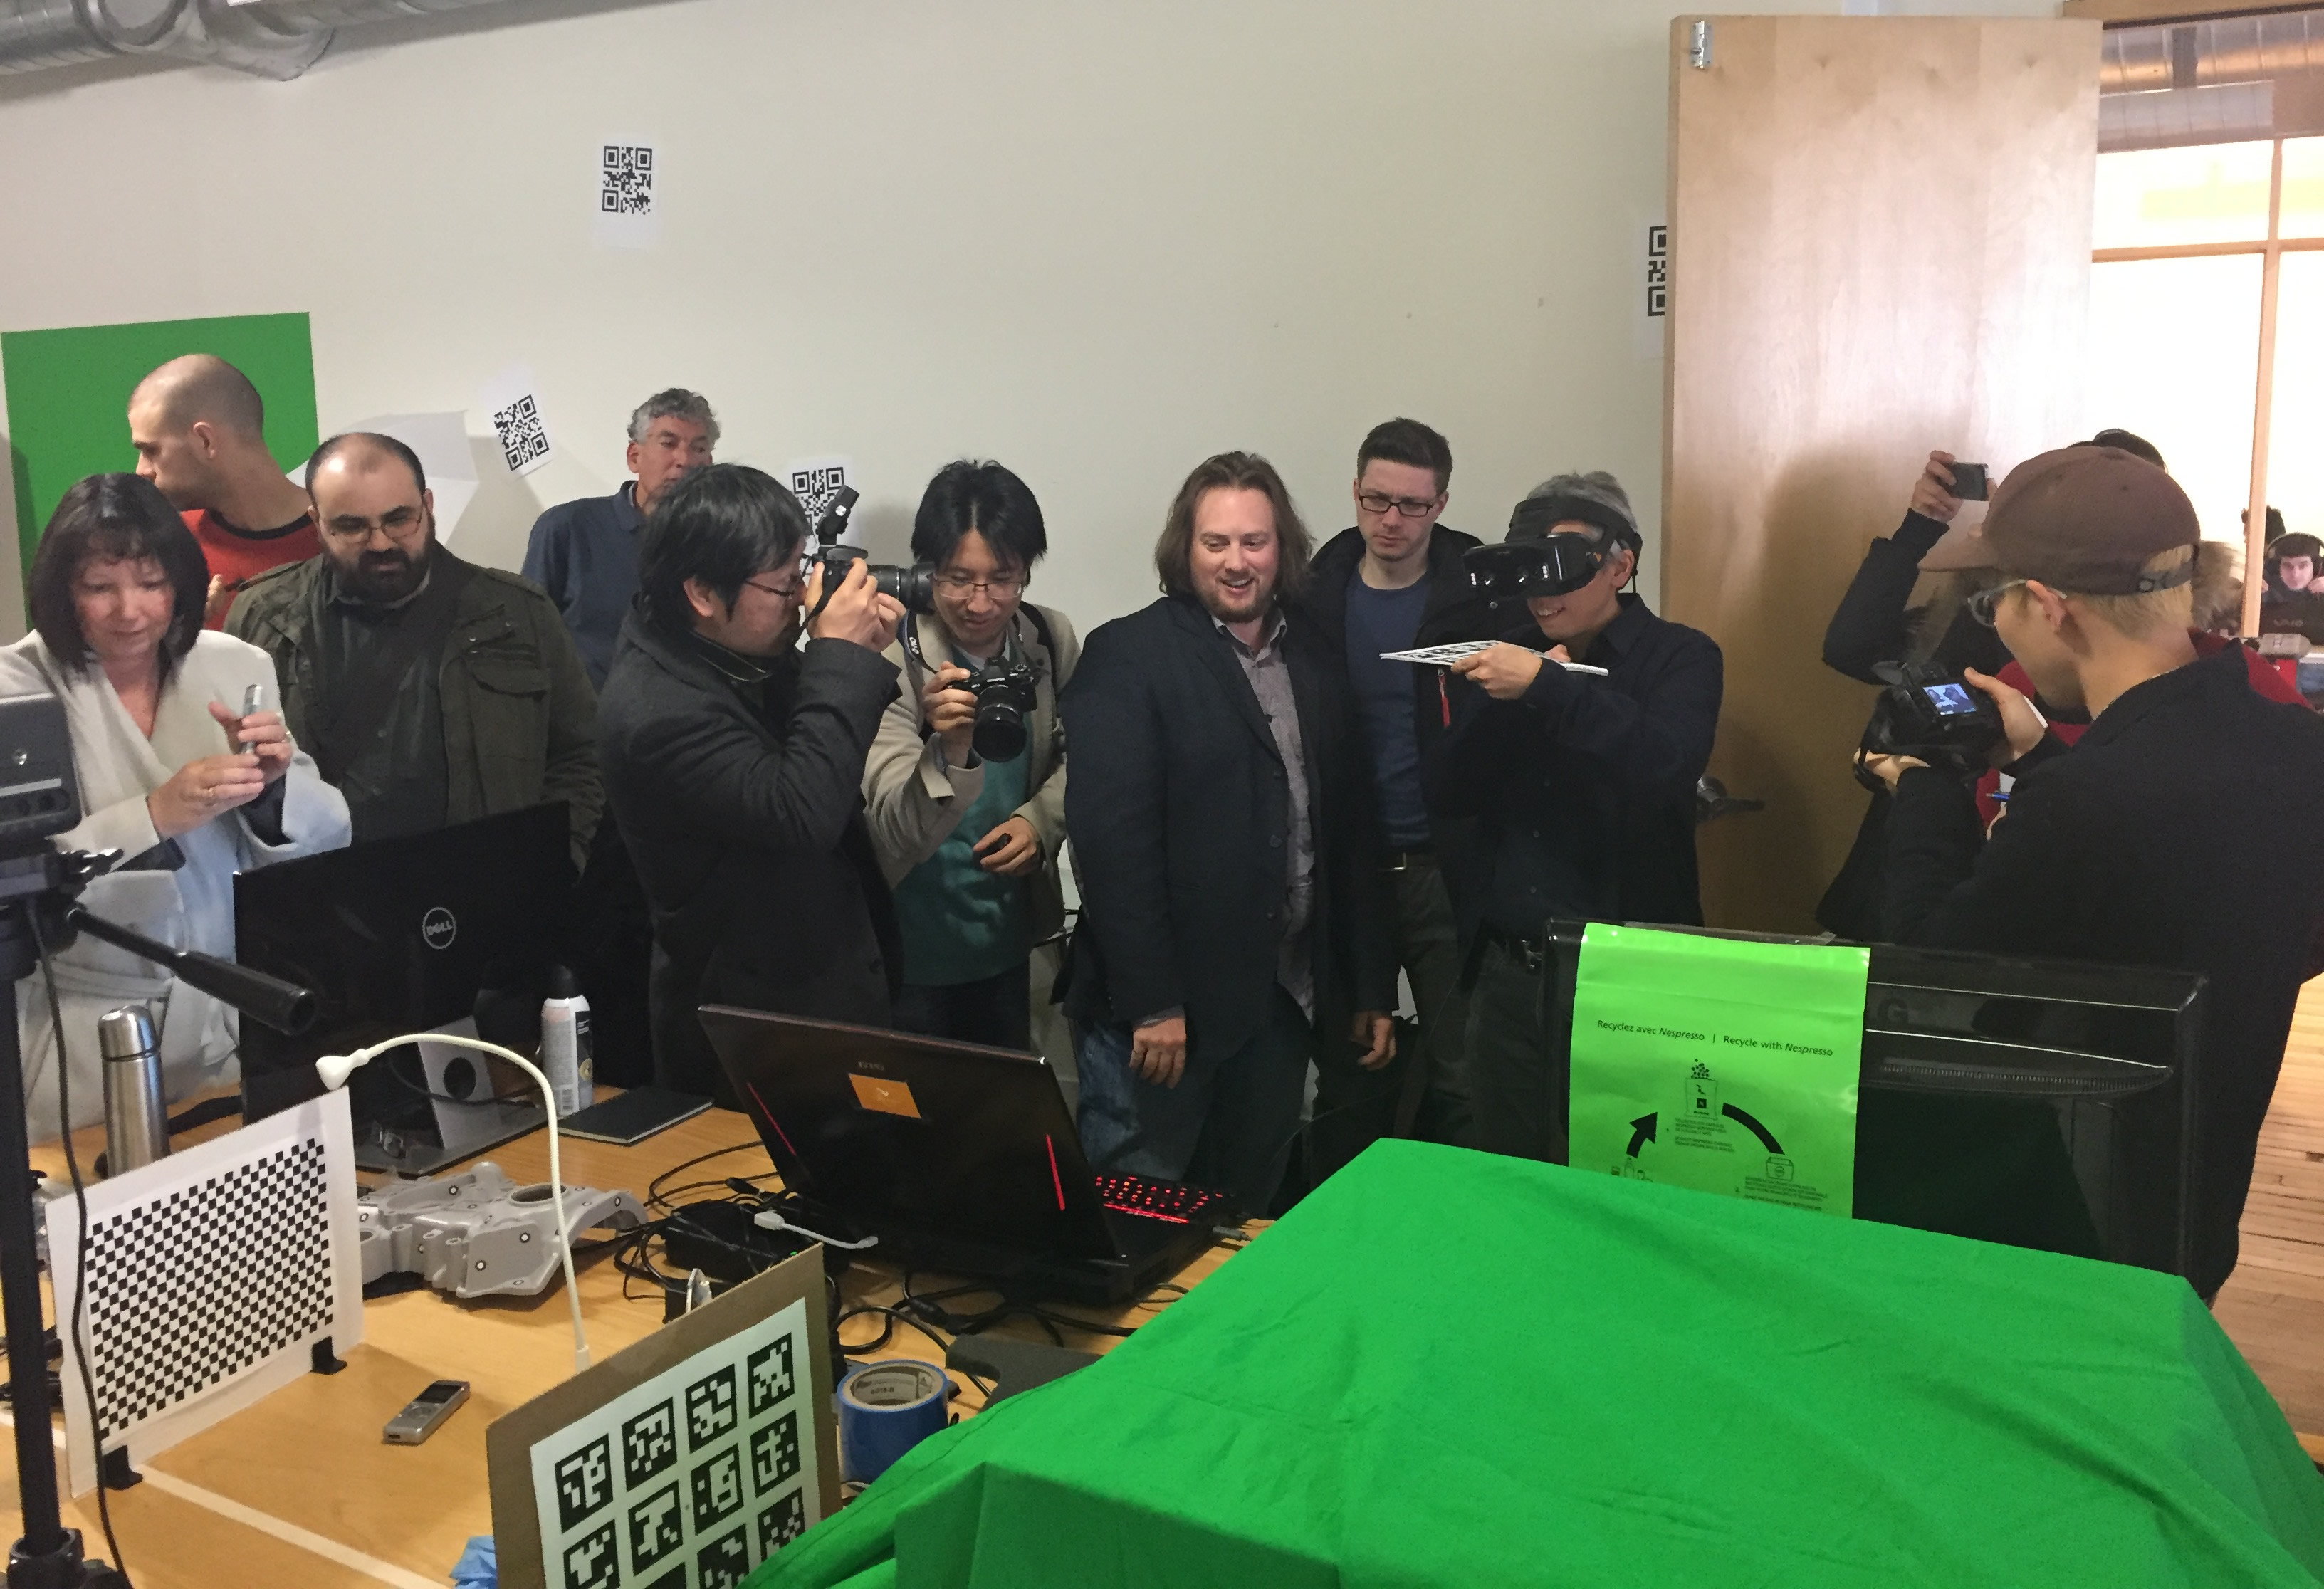 Bertrand Nepveu, CEO of Vrvana, treated one of the journalists to an amazing experience with his virtual reality headset.